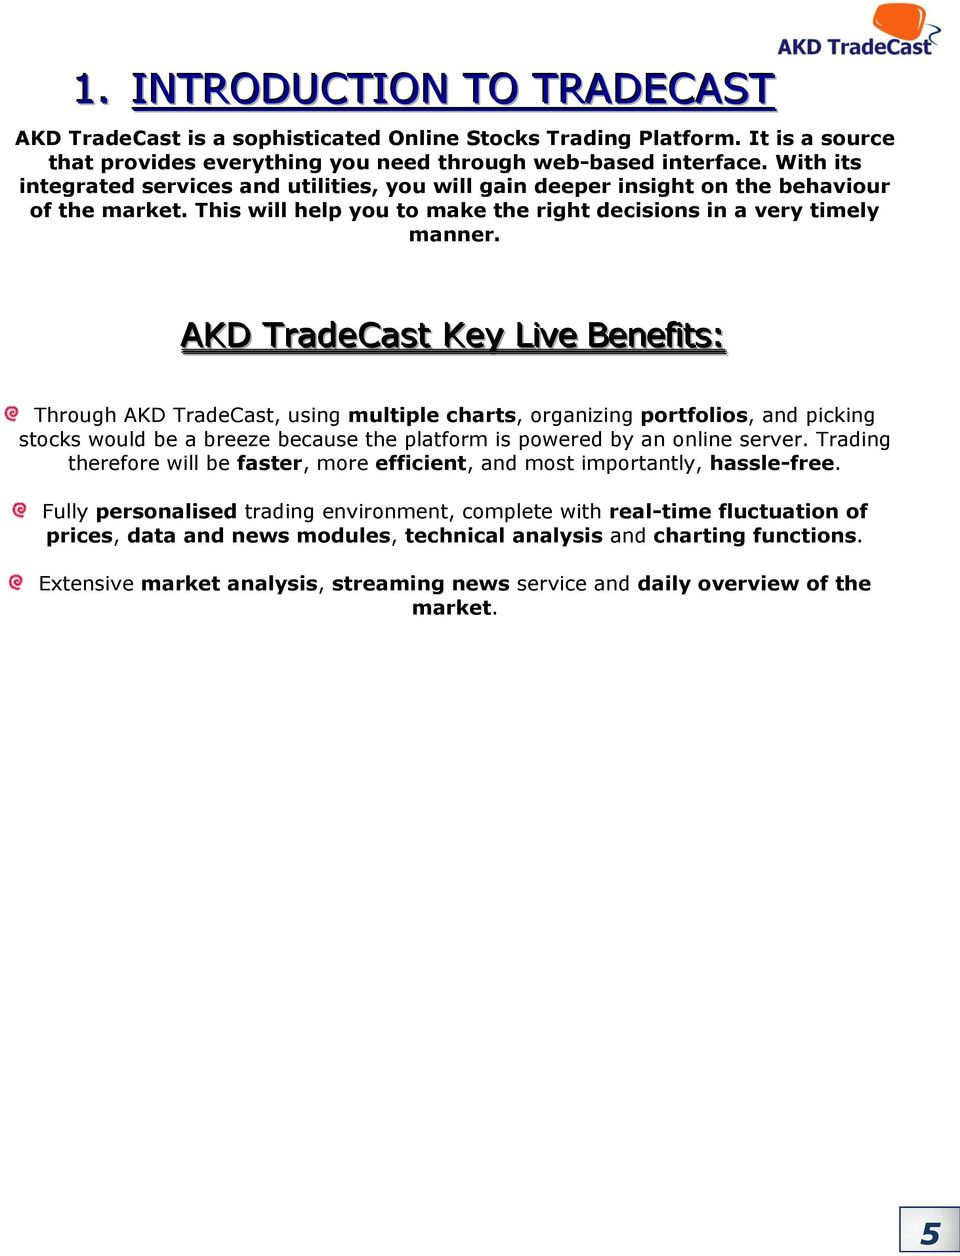 AKD TradeCast Key Liive Benefiits: Through AKD TradeCast, using multiple charts, organizing portfolios, and picking stocks would be a breeze because the platform is powered by an online server.